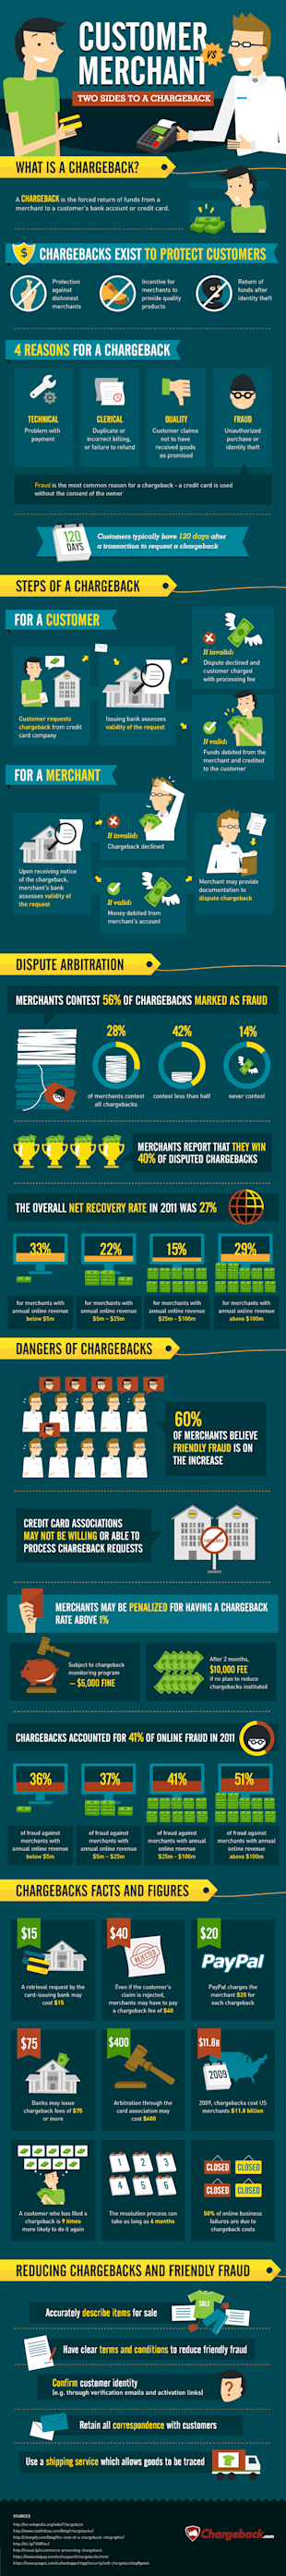 Customer Vs. Merchant: Two Sides to a Chargeback image customer vs merchant what is a chargeback infographic